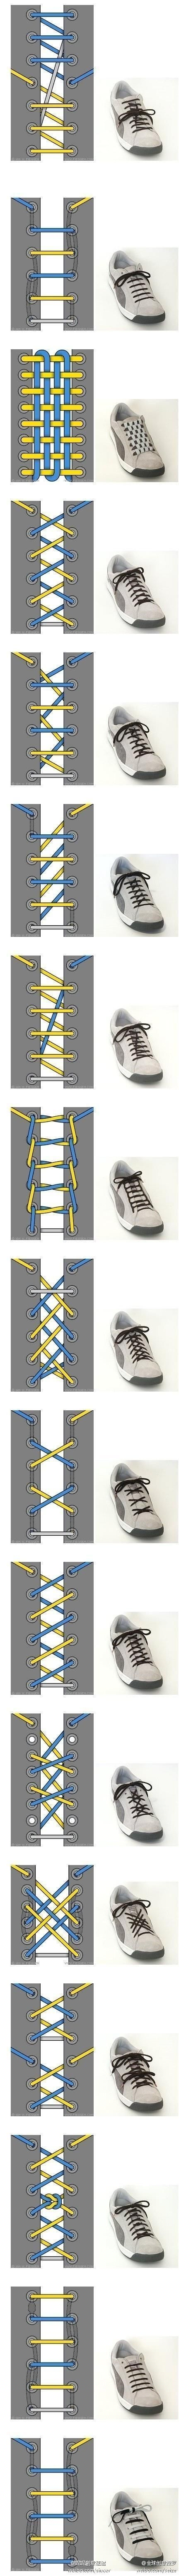 Learn how to lace my laces differently!